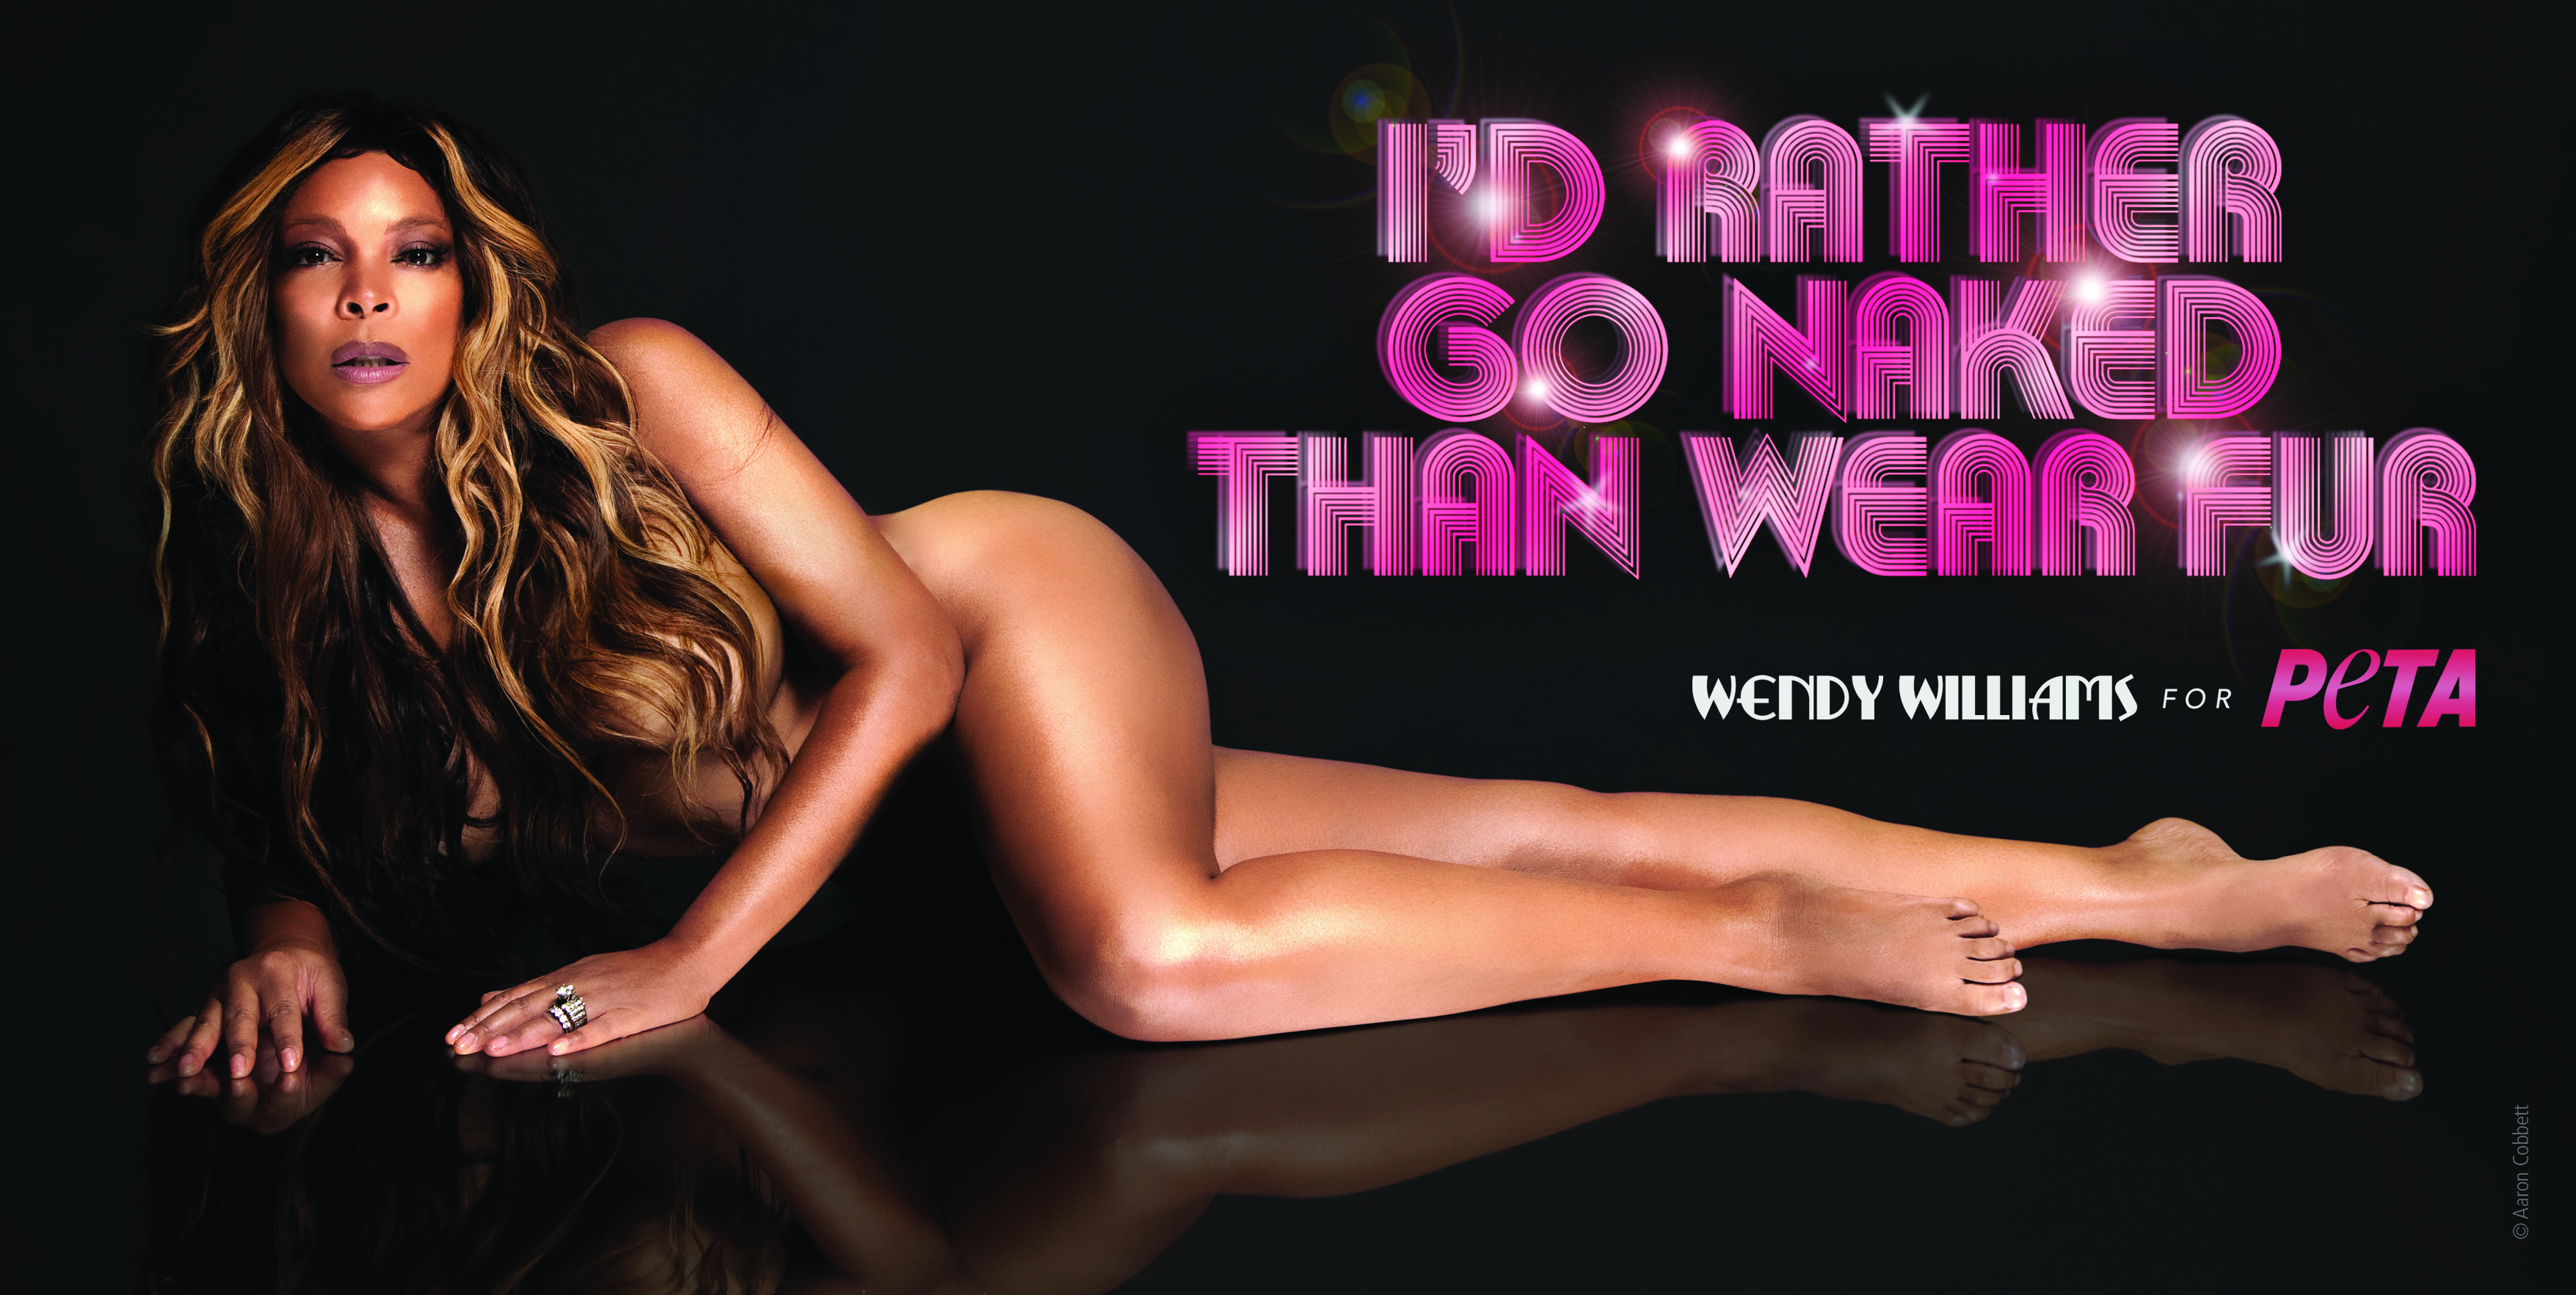 Naked wendy williams secrets